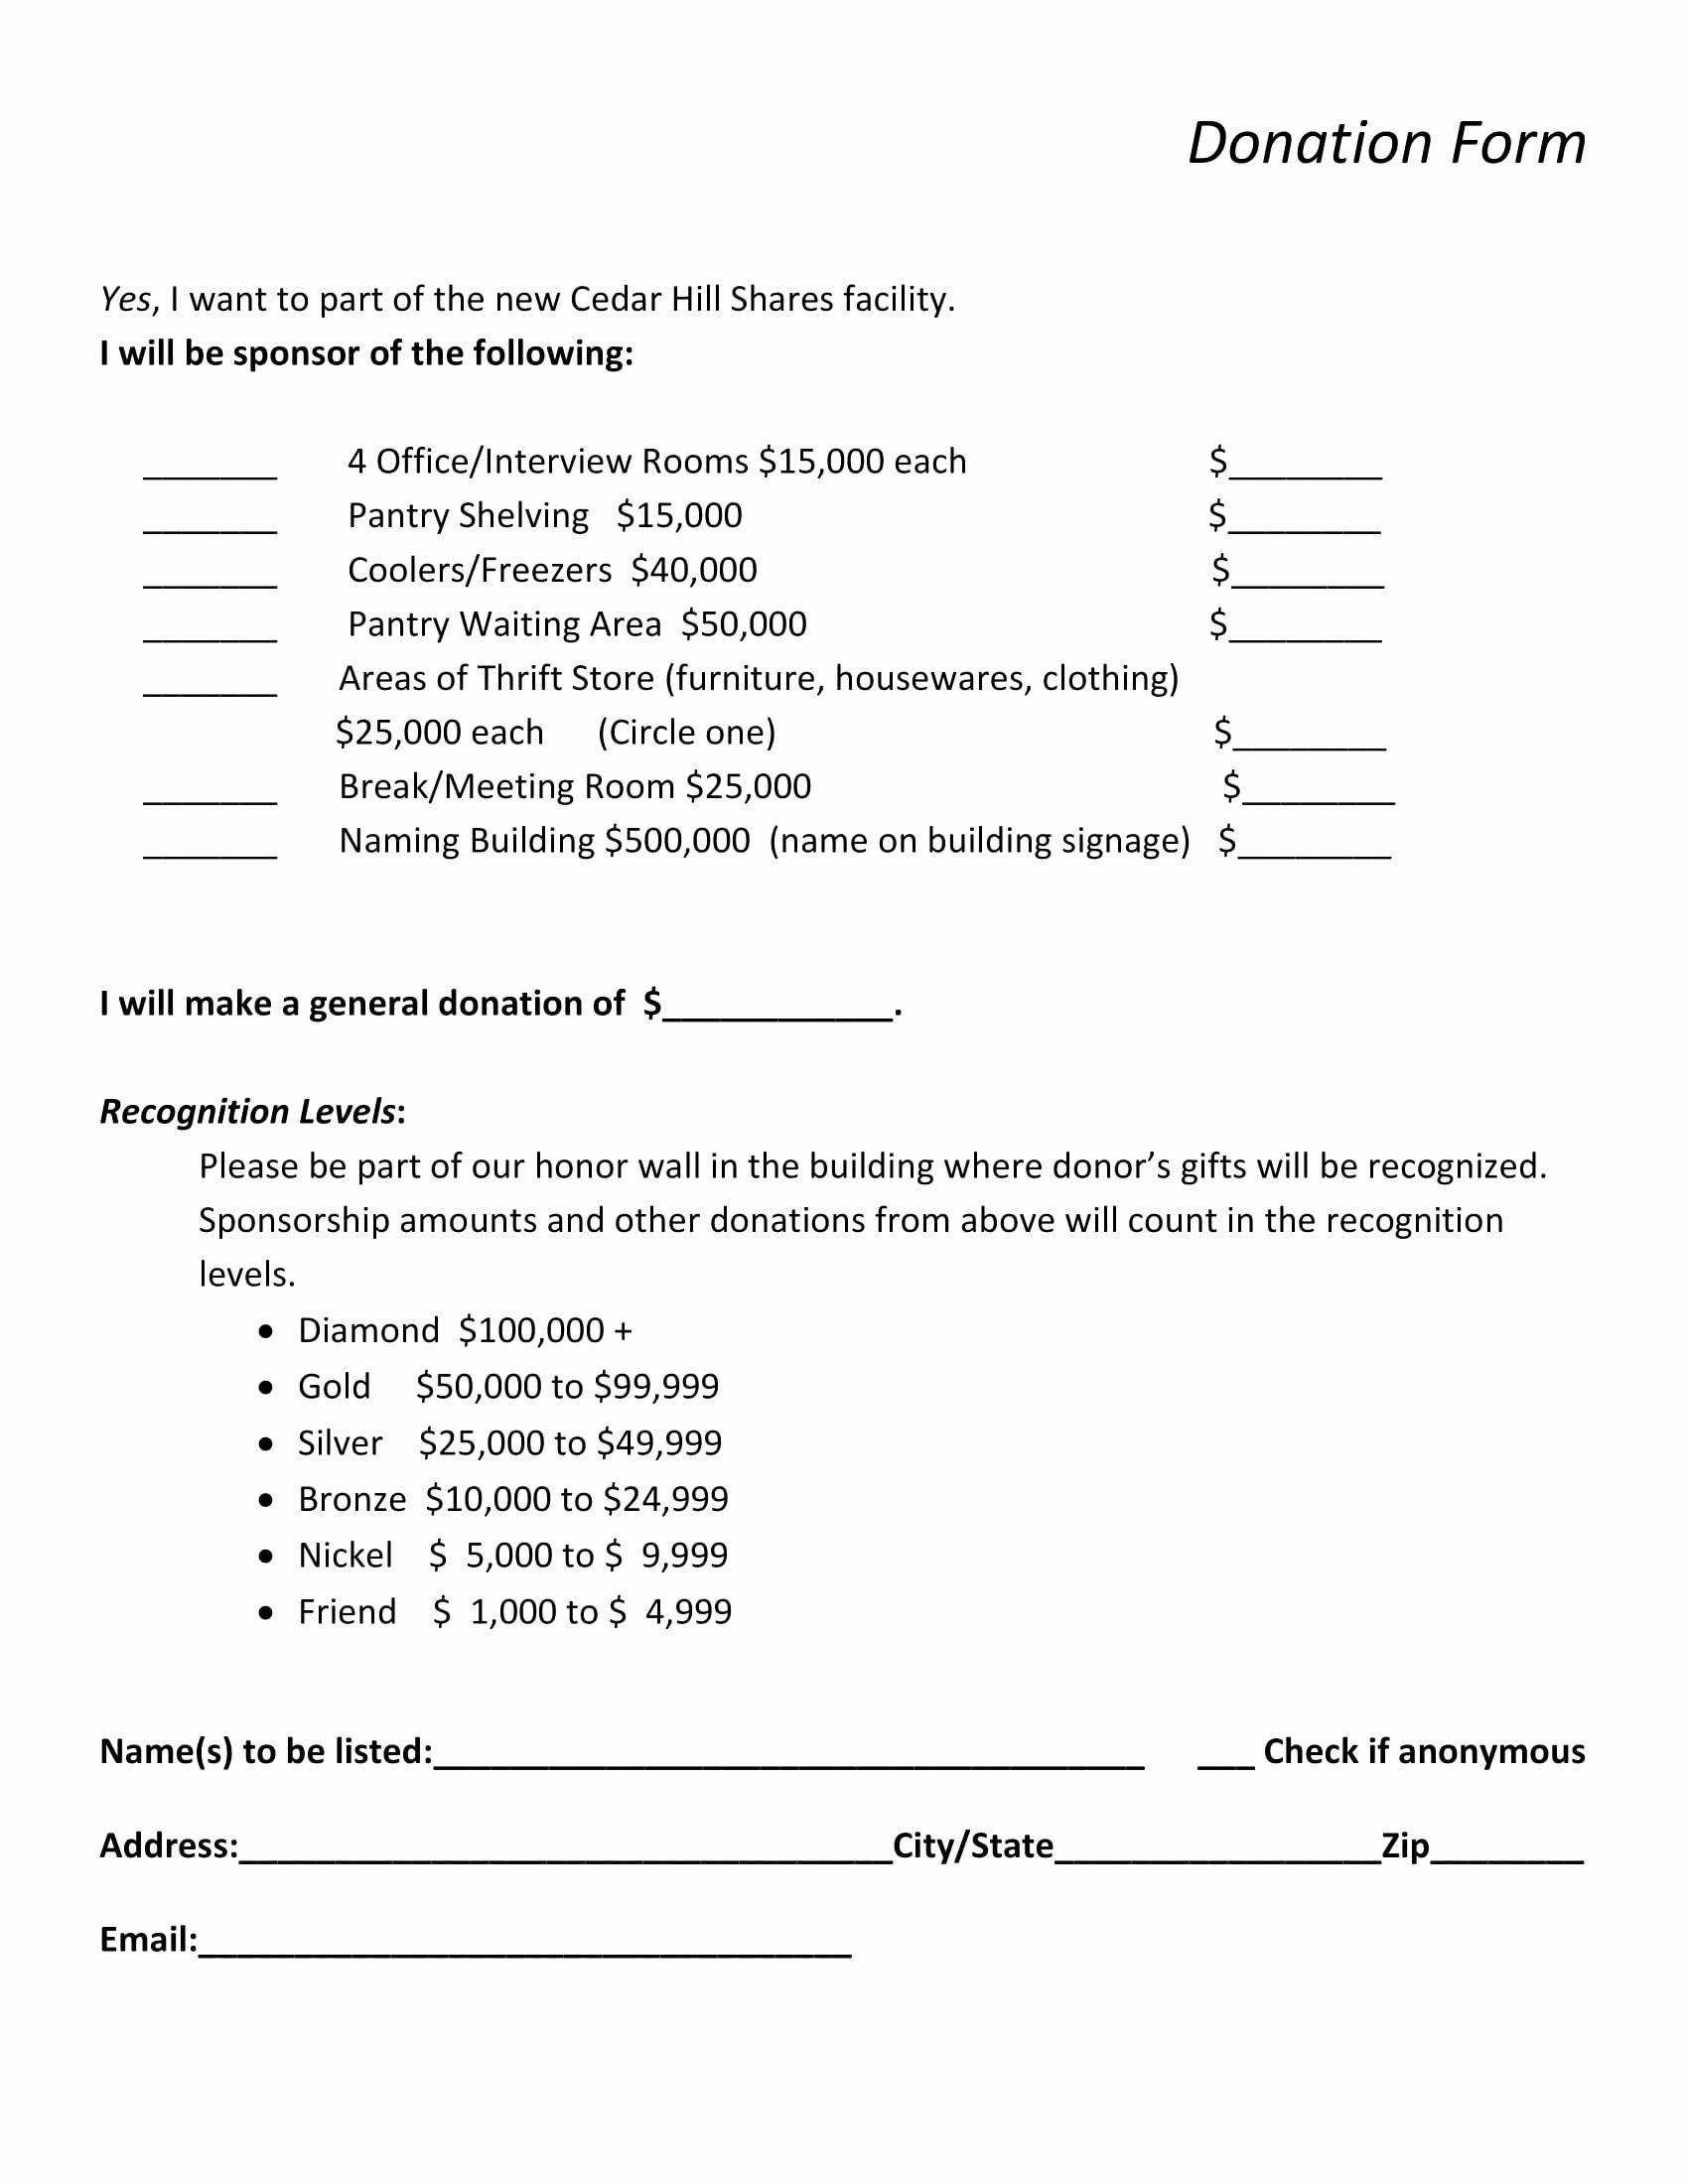 Salvation Army Donation Guide Spreadsheet Throughout Goodwill Donation Spreadsheet Best Of Salvation Army Guide Beautiful